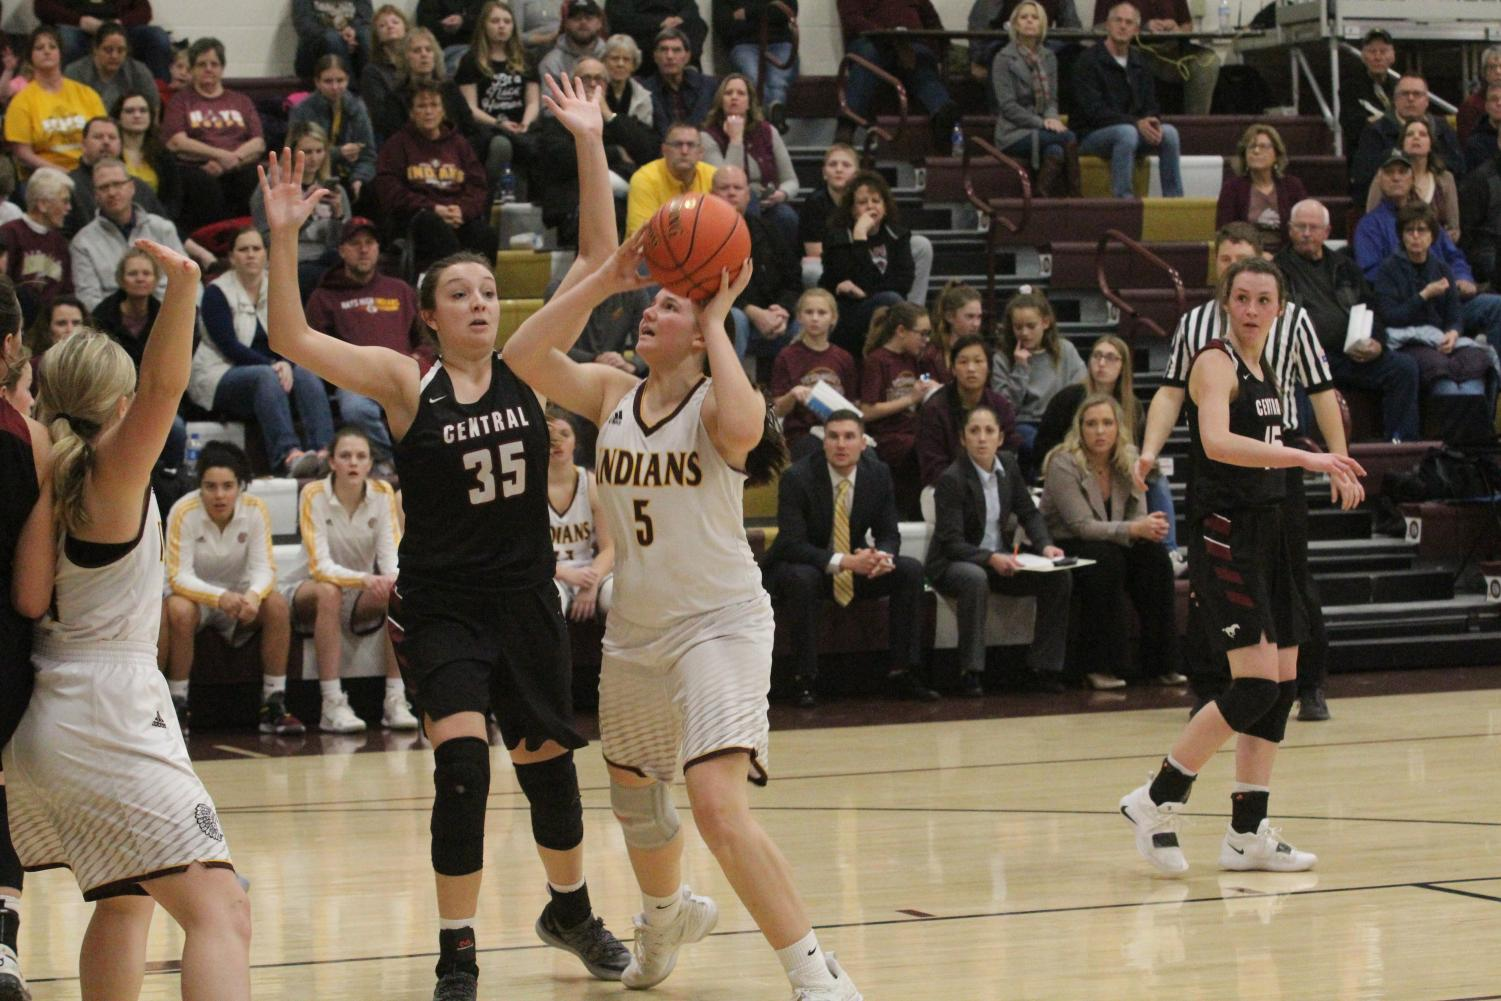 Senior Jaycee Dale attempts a basket at a previous home game. The team is now 13-7 and will play at home on Feb. 27 for Sub-State.